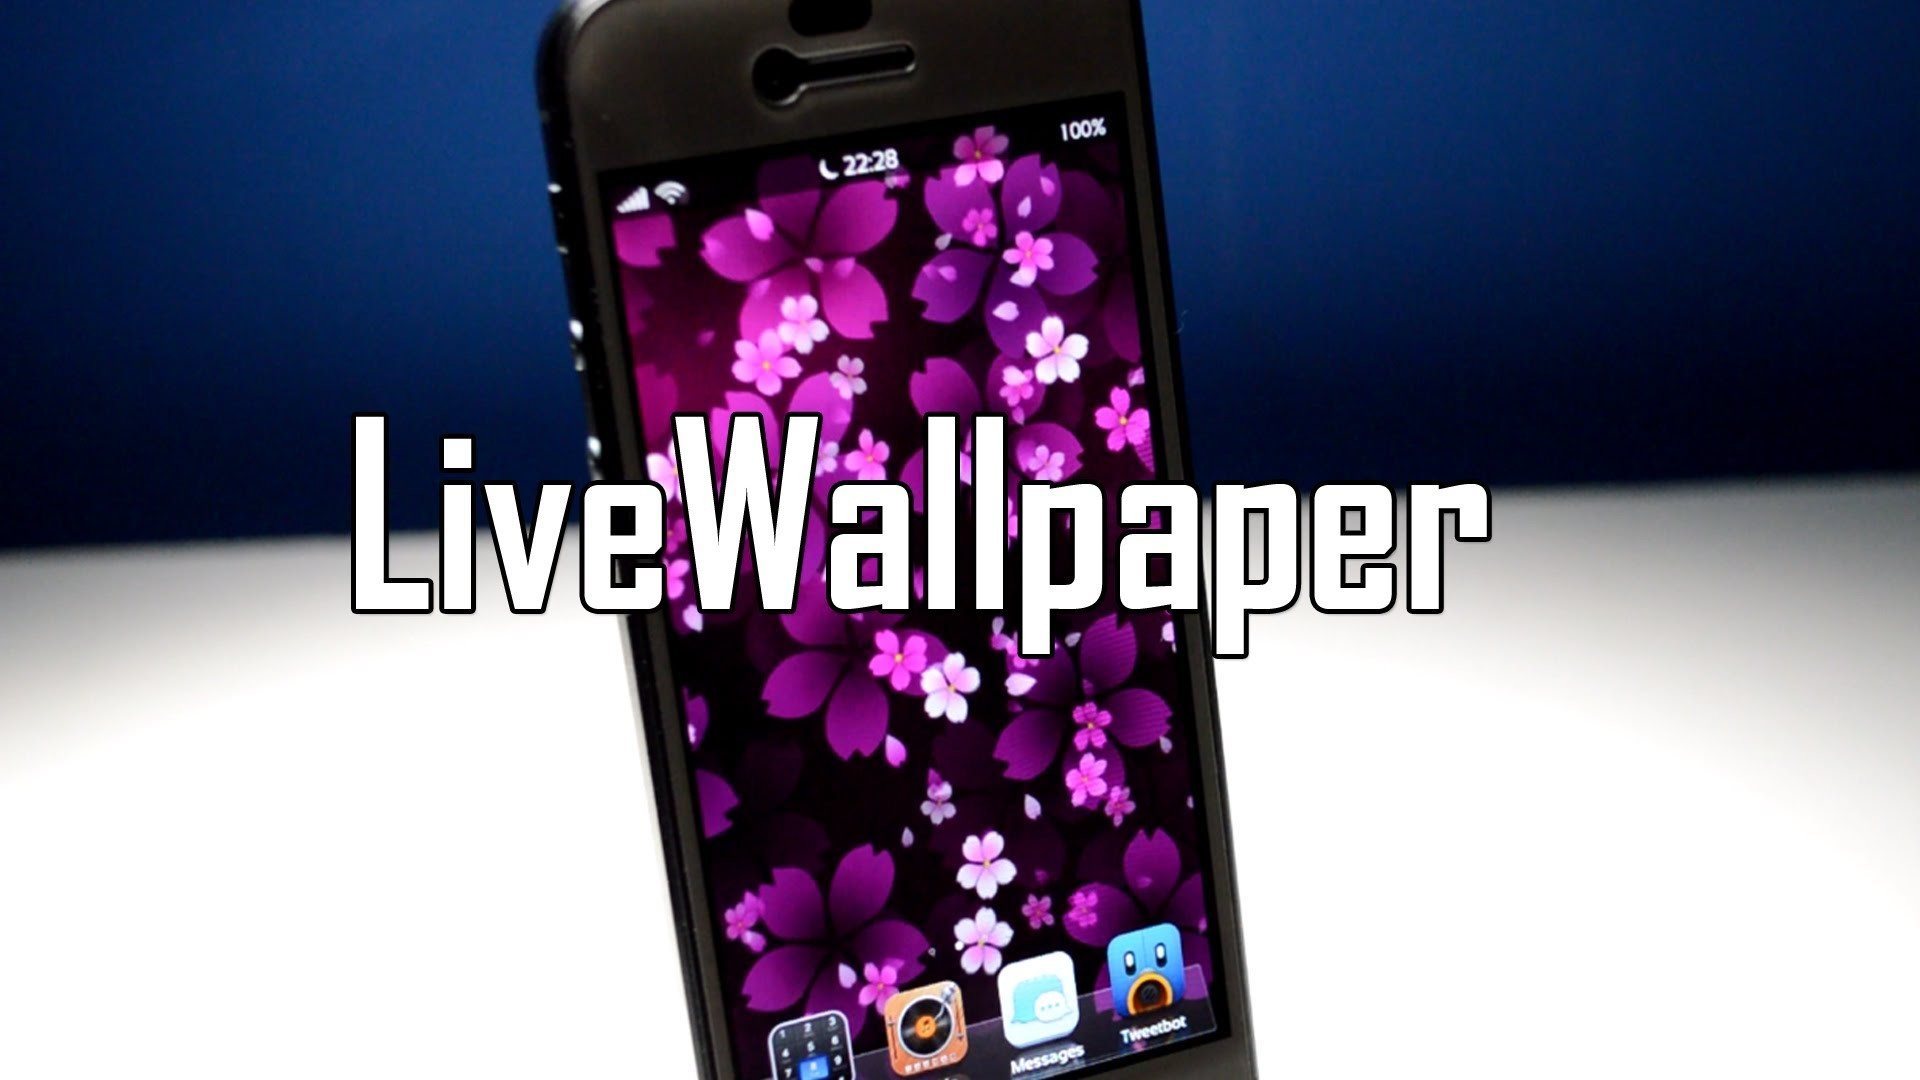 1920x1080 LiveWallpaper - Live Wallpapers & Scrolling Background On iPhone 5/iOS 6 -  YouTube